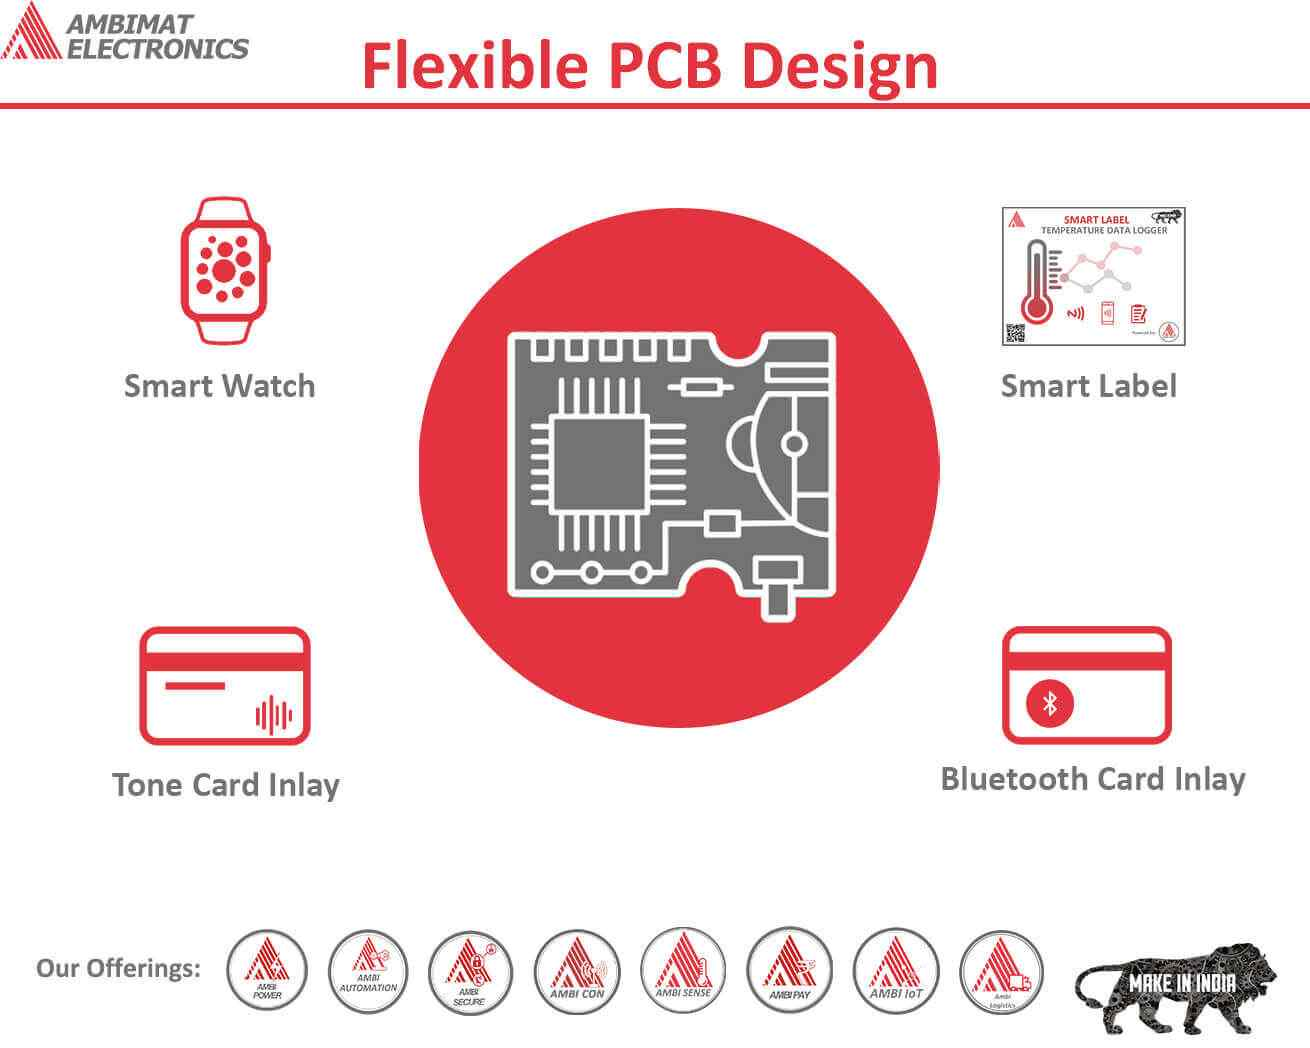 Flexible PCB designs